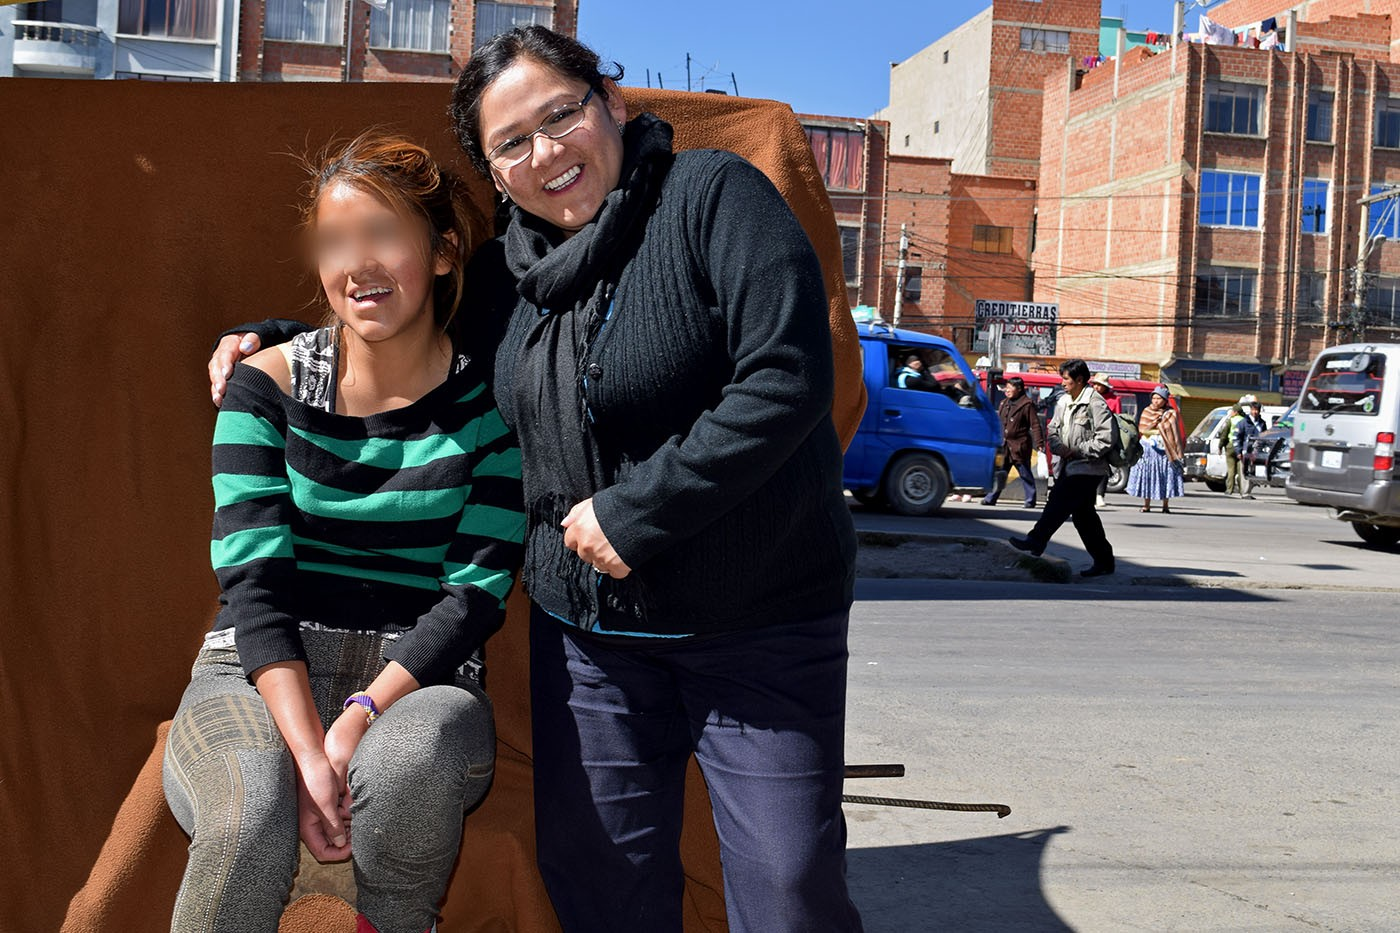 Katty and IJM social worker Jeshika Mendoza in El Alto, Bolivia